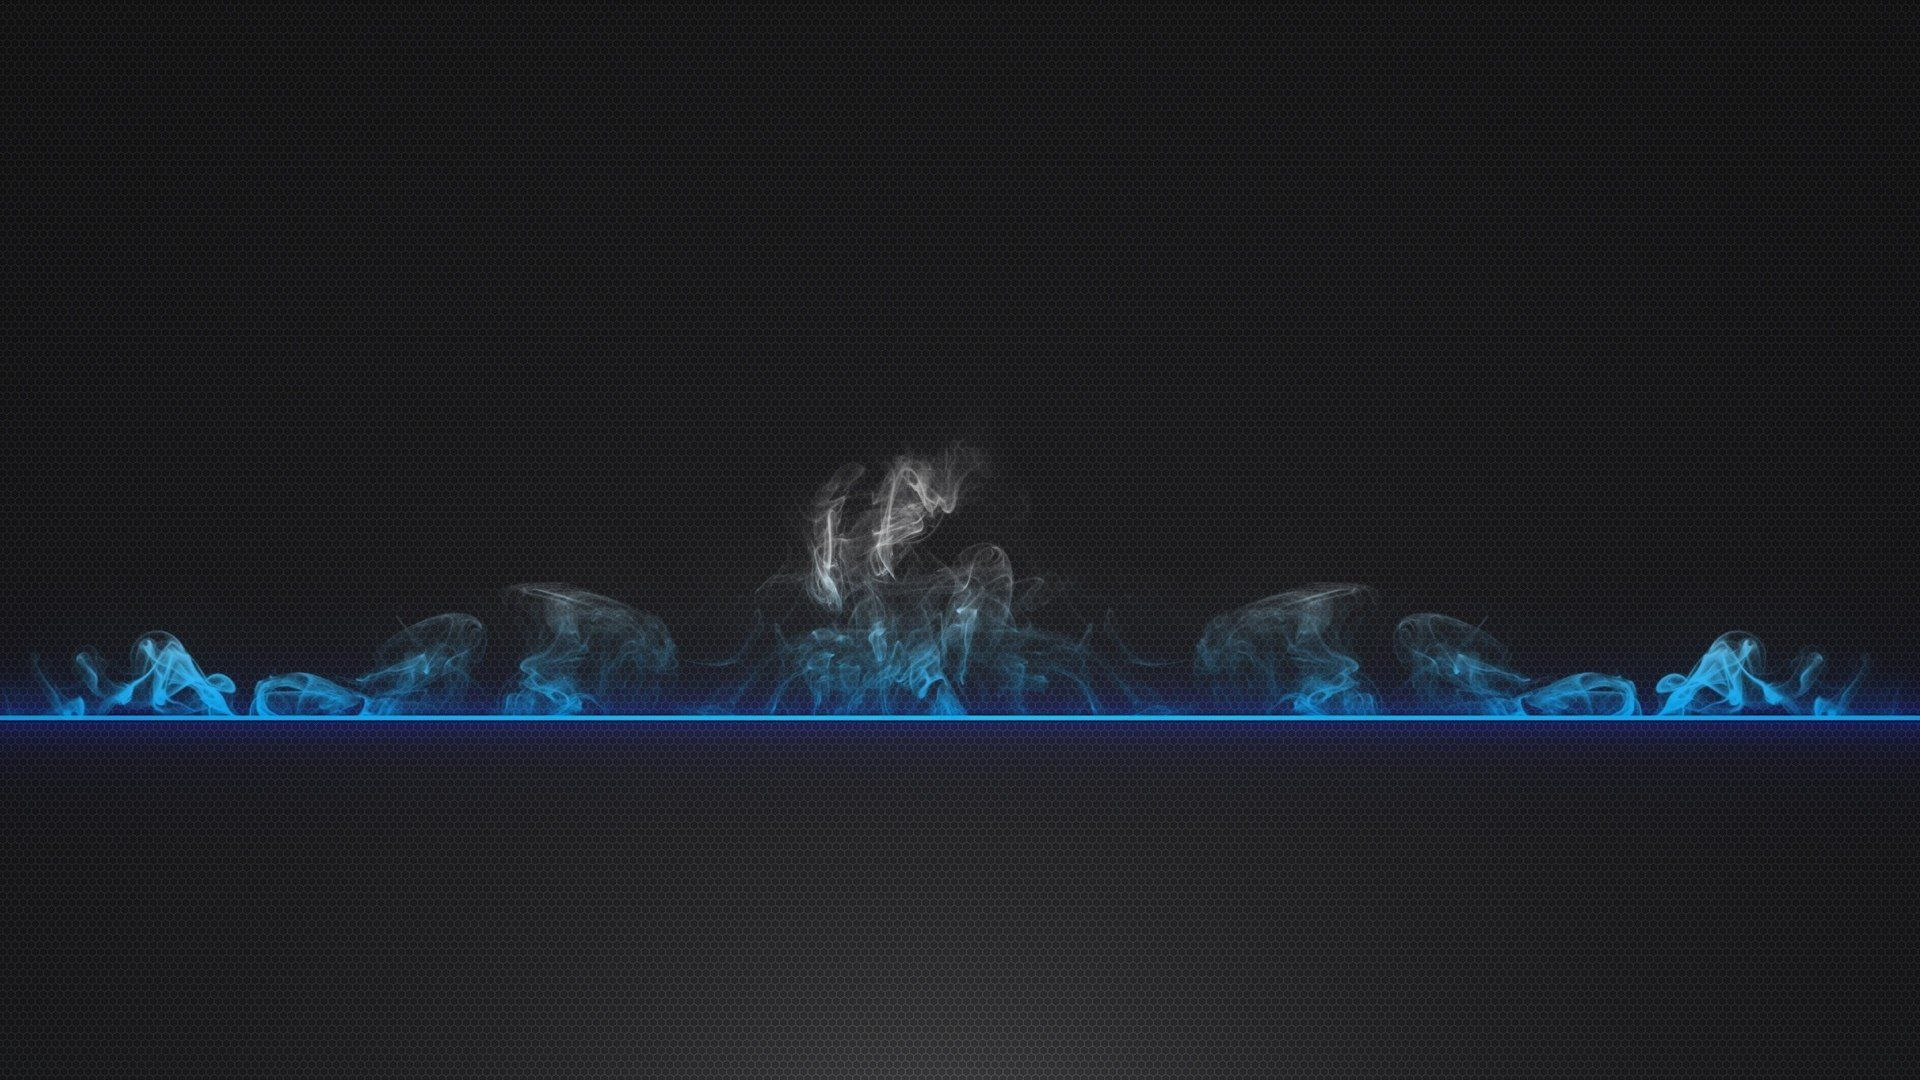 Abstract Smoke Background Hd Wallpaper 1080p Lugares